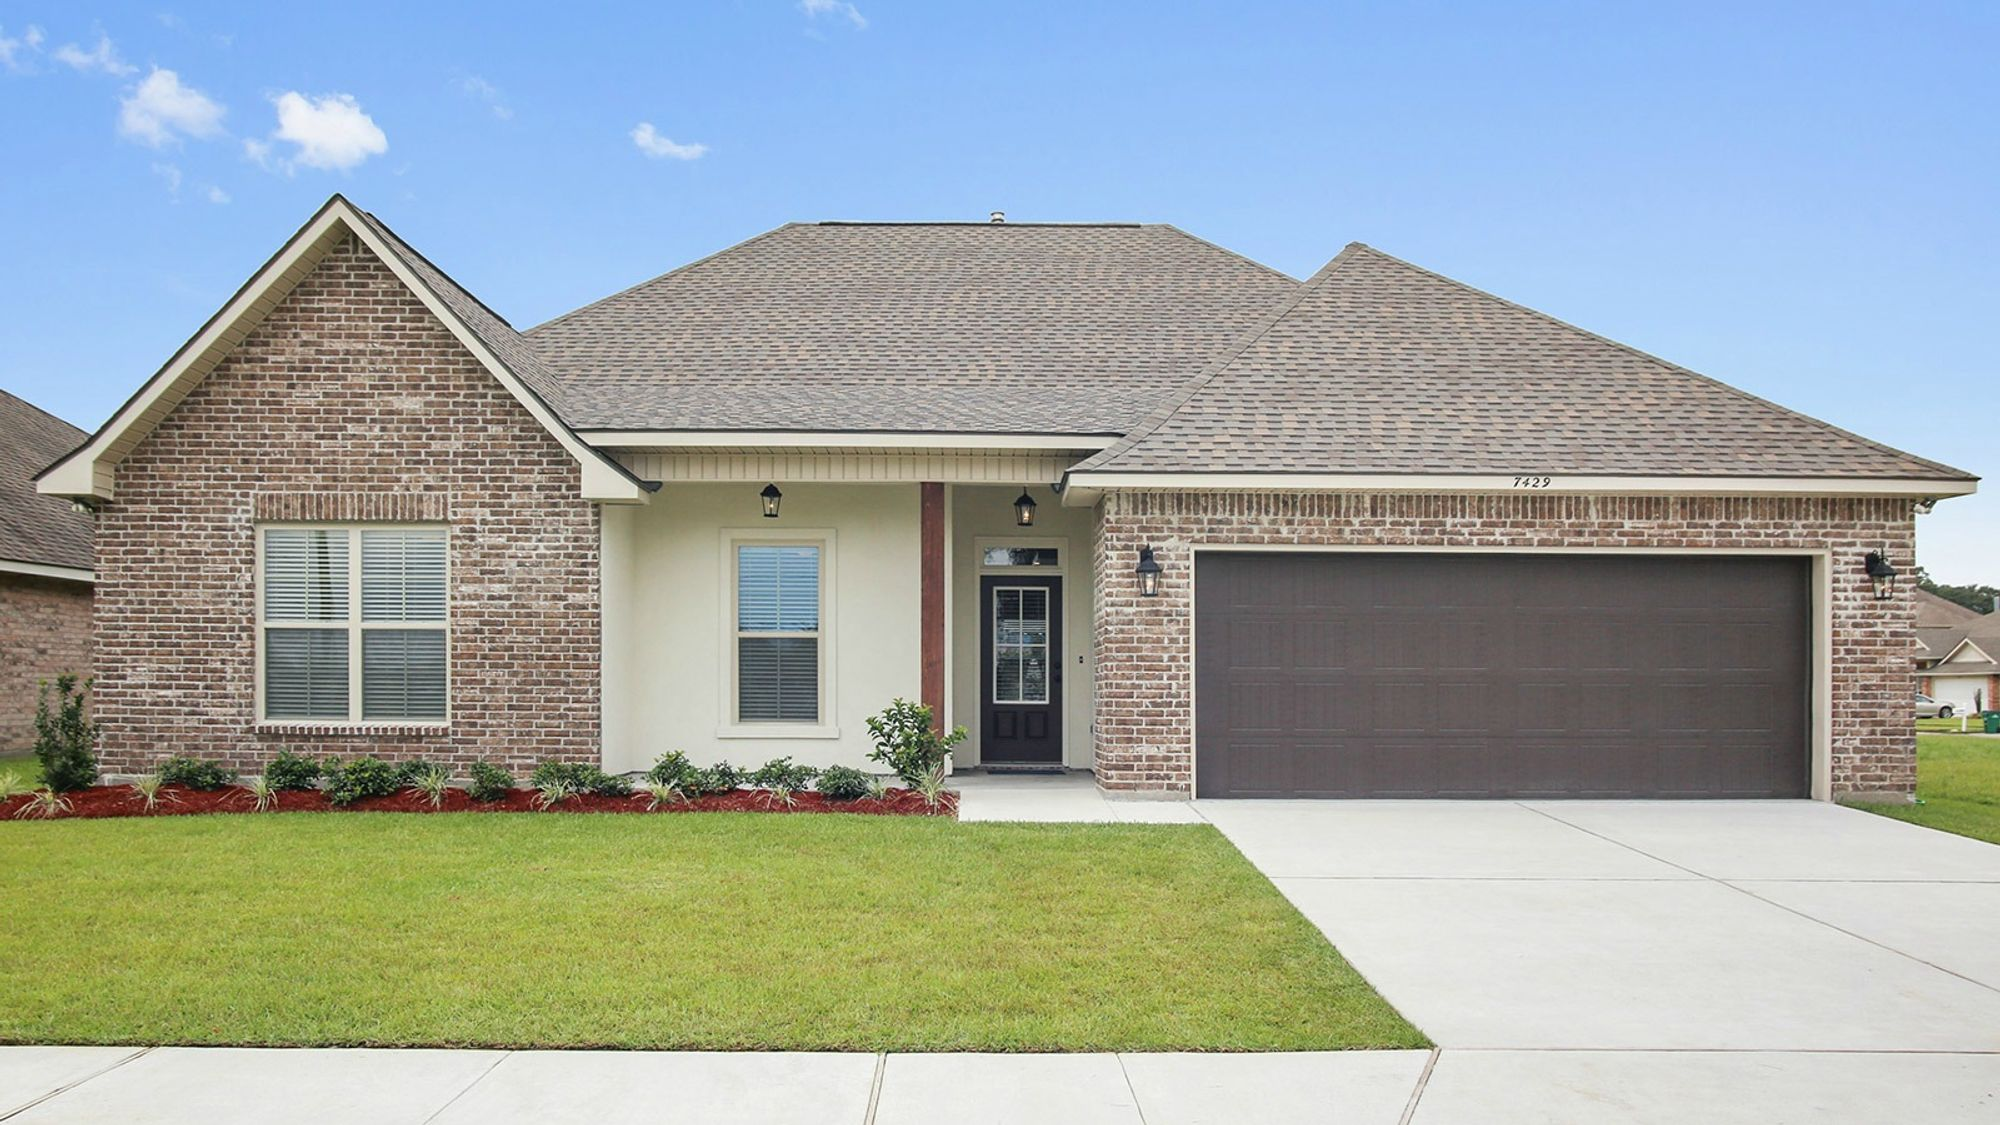 Front view of Model Home -cypress beam- stucco- brick- front loading garage- lanterns- painted door- DSLD Homes- Marrero - Louisiana- New Orleans area- Brentwood